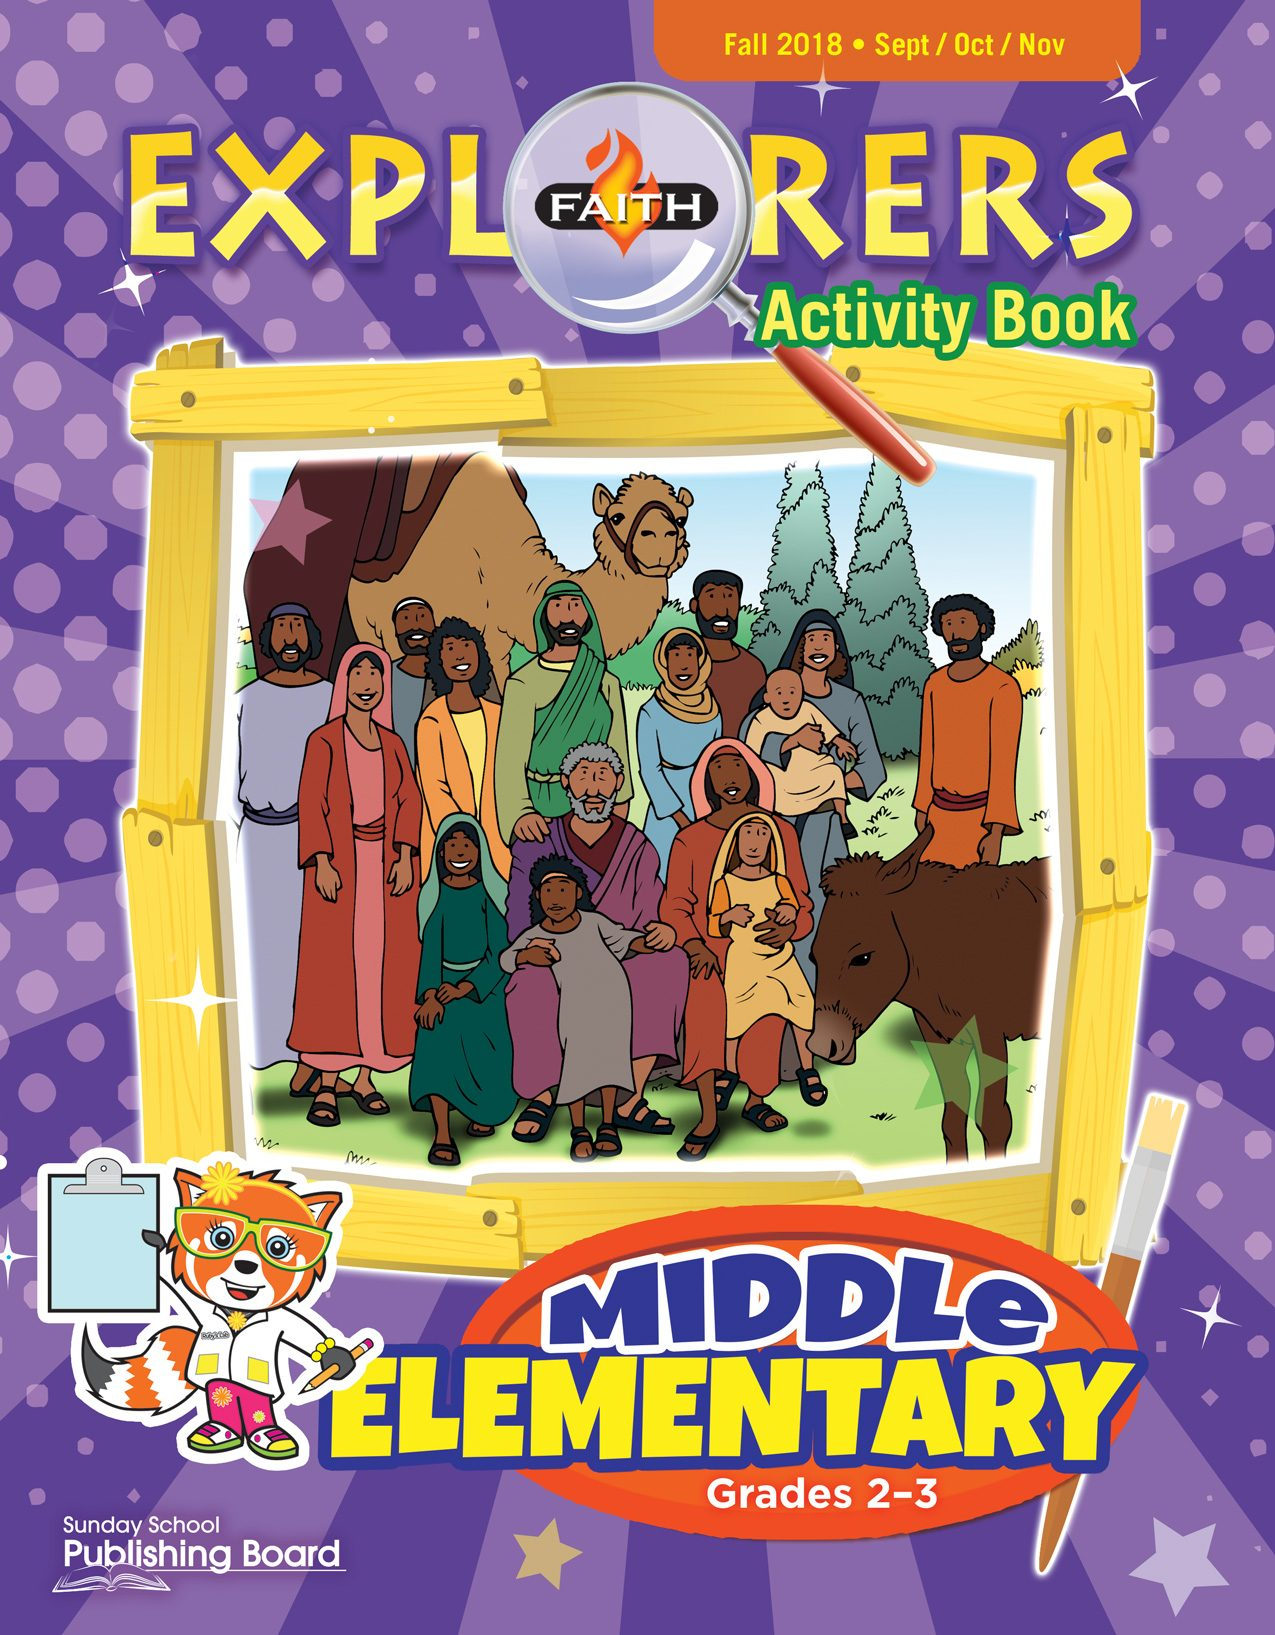 Faith Explorers Activity Book, Middle Elementary for Grades 2-3 (Fall 2018)-Digital Edition